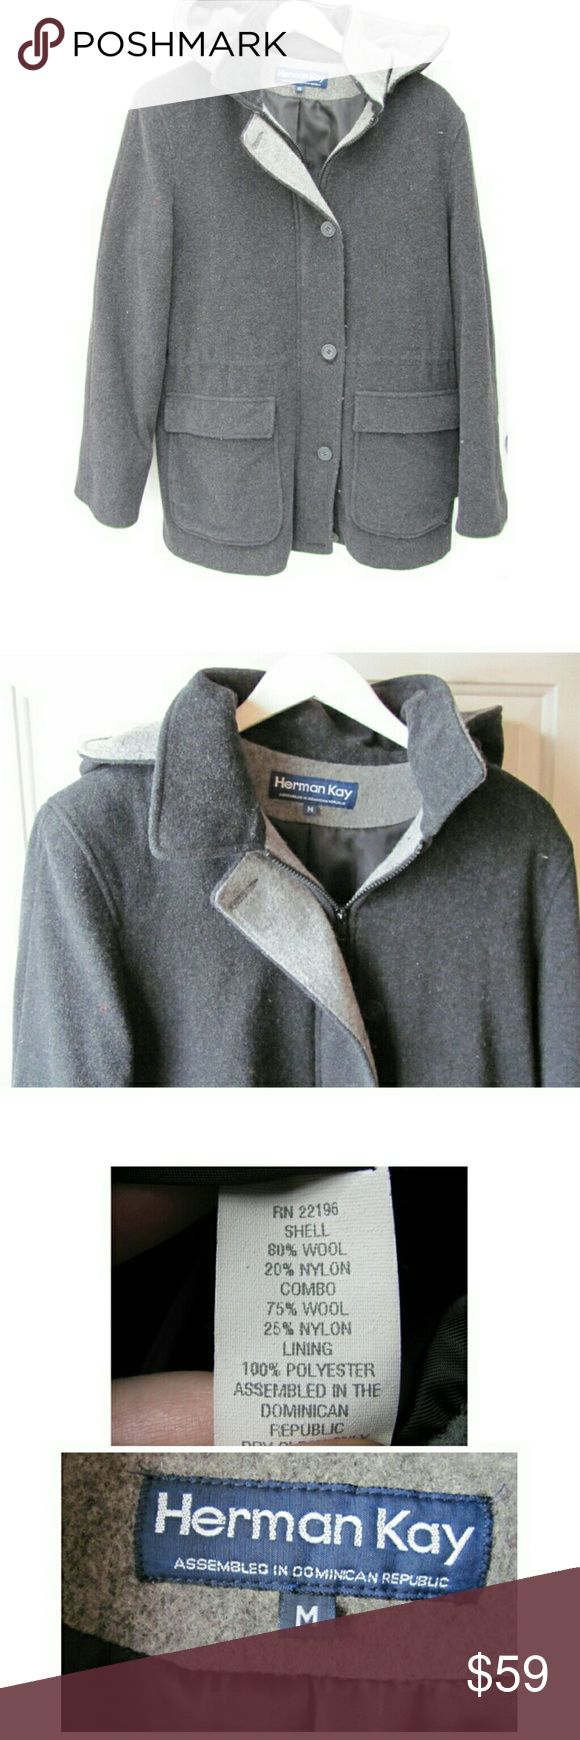 """EUC Gray Wool Pea Coat Large Herman Kay with Hood Medium, can fit a Large too--about a size 12. 19"""" from underarm, 29.5"""" from collar down middle of back. About 19"""" across shoulders. Removable (with buttons) two-tone hood.  Coat is charcoal gray. Full zip and large button closures down front. Two-tone gray around collar and hood and flap that buttons over zipper. Exterior is 80% Wool, 20% Nylon. Light shoulder padding (built in). Flap and slip pockets, 4 total, for keys, cell phone. Excellent…"""